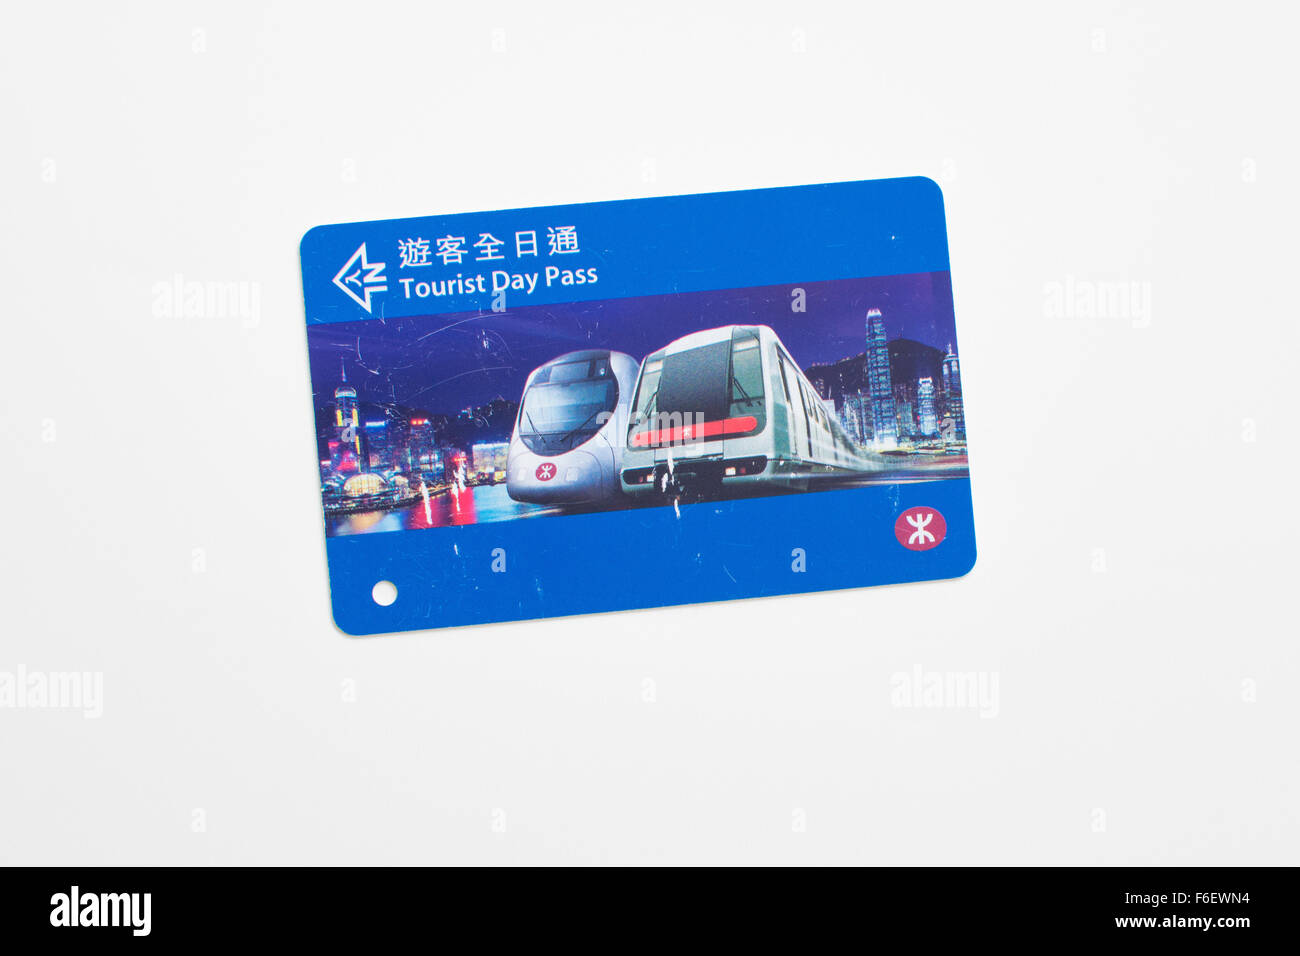 MTR tourist day pass for unlimited travel on the MTR, Hong Kong - ticket from 2012 - Stock Image